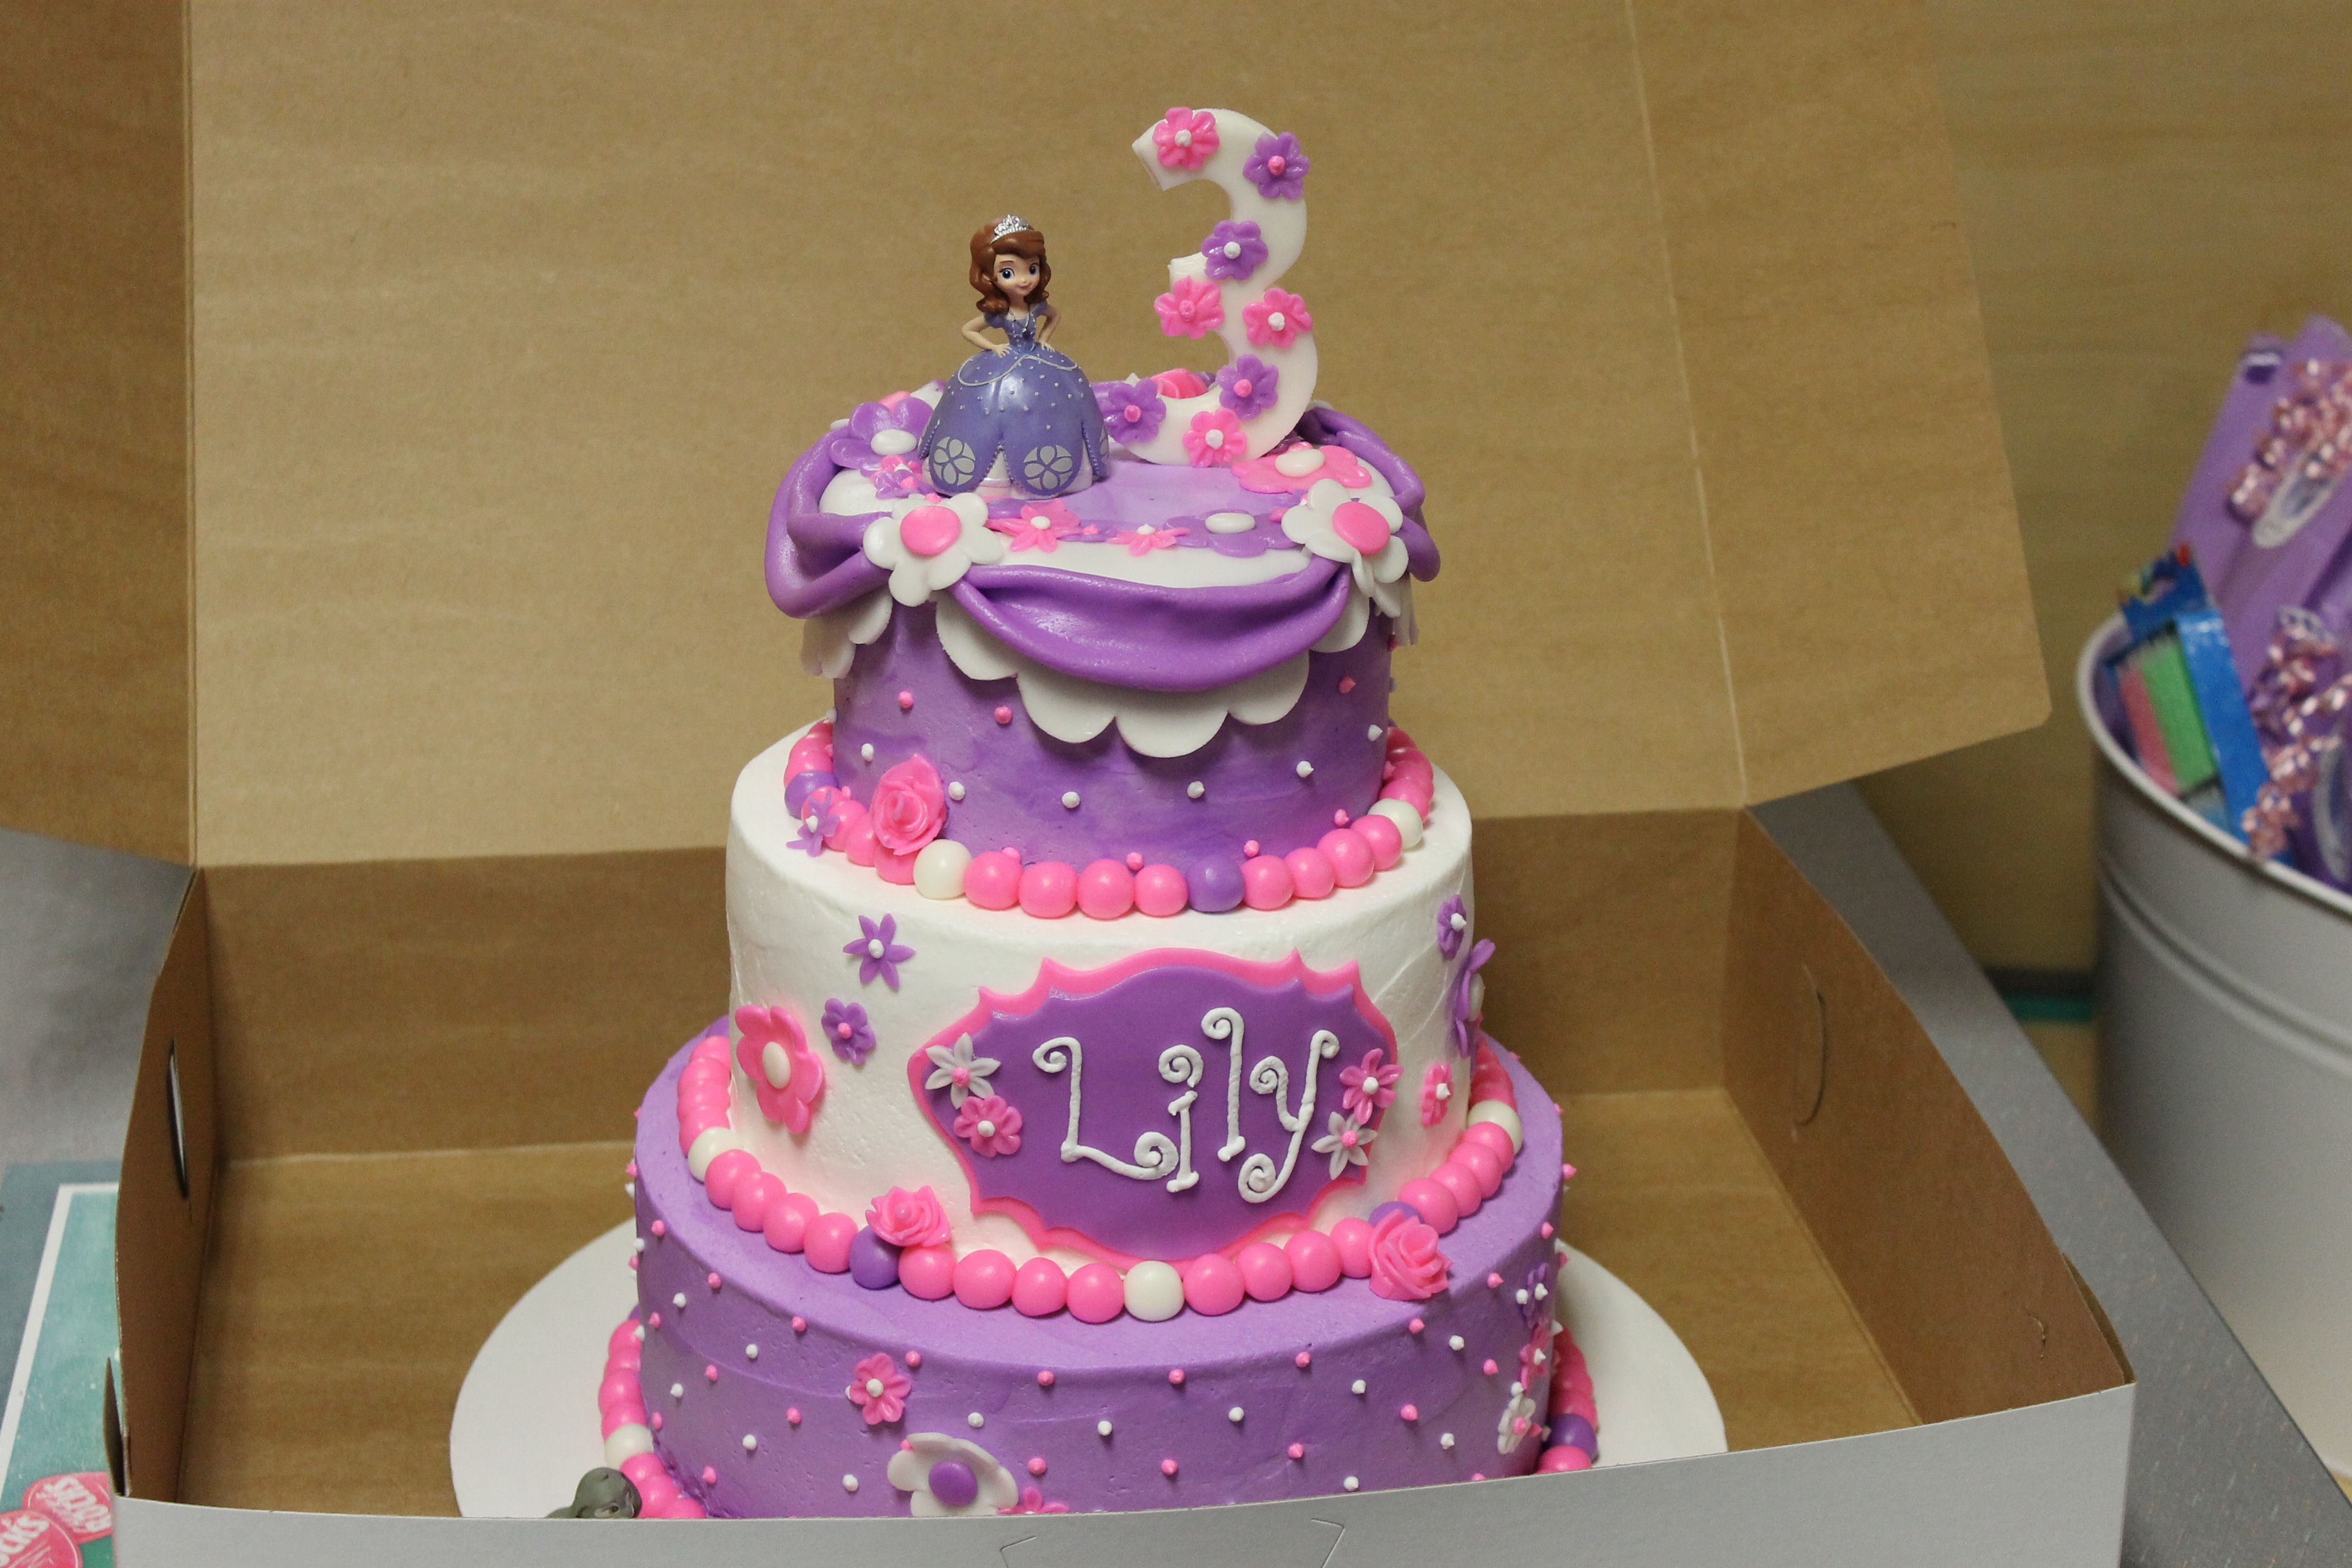 Sofia The First Cake Design Goldilocks : Sofia Cakes Cake Ideas and Designs